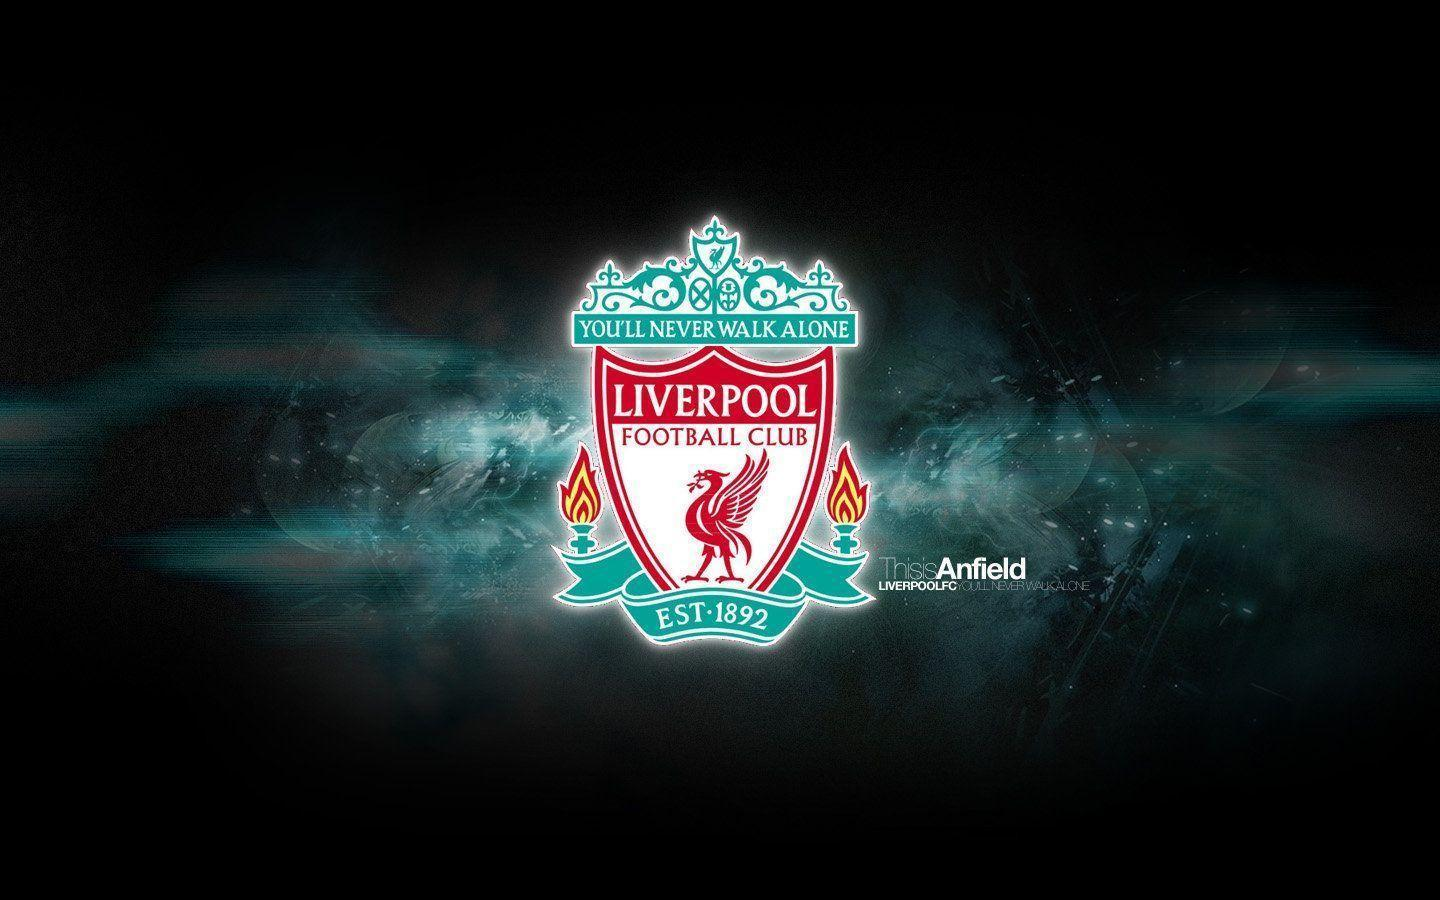 Free Wallpapers Liverpool Fc 1440x900PX ~ Wallpapers Liverpool Fc Hd